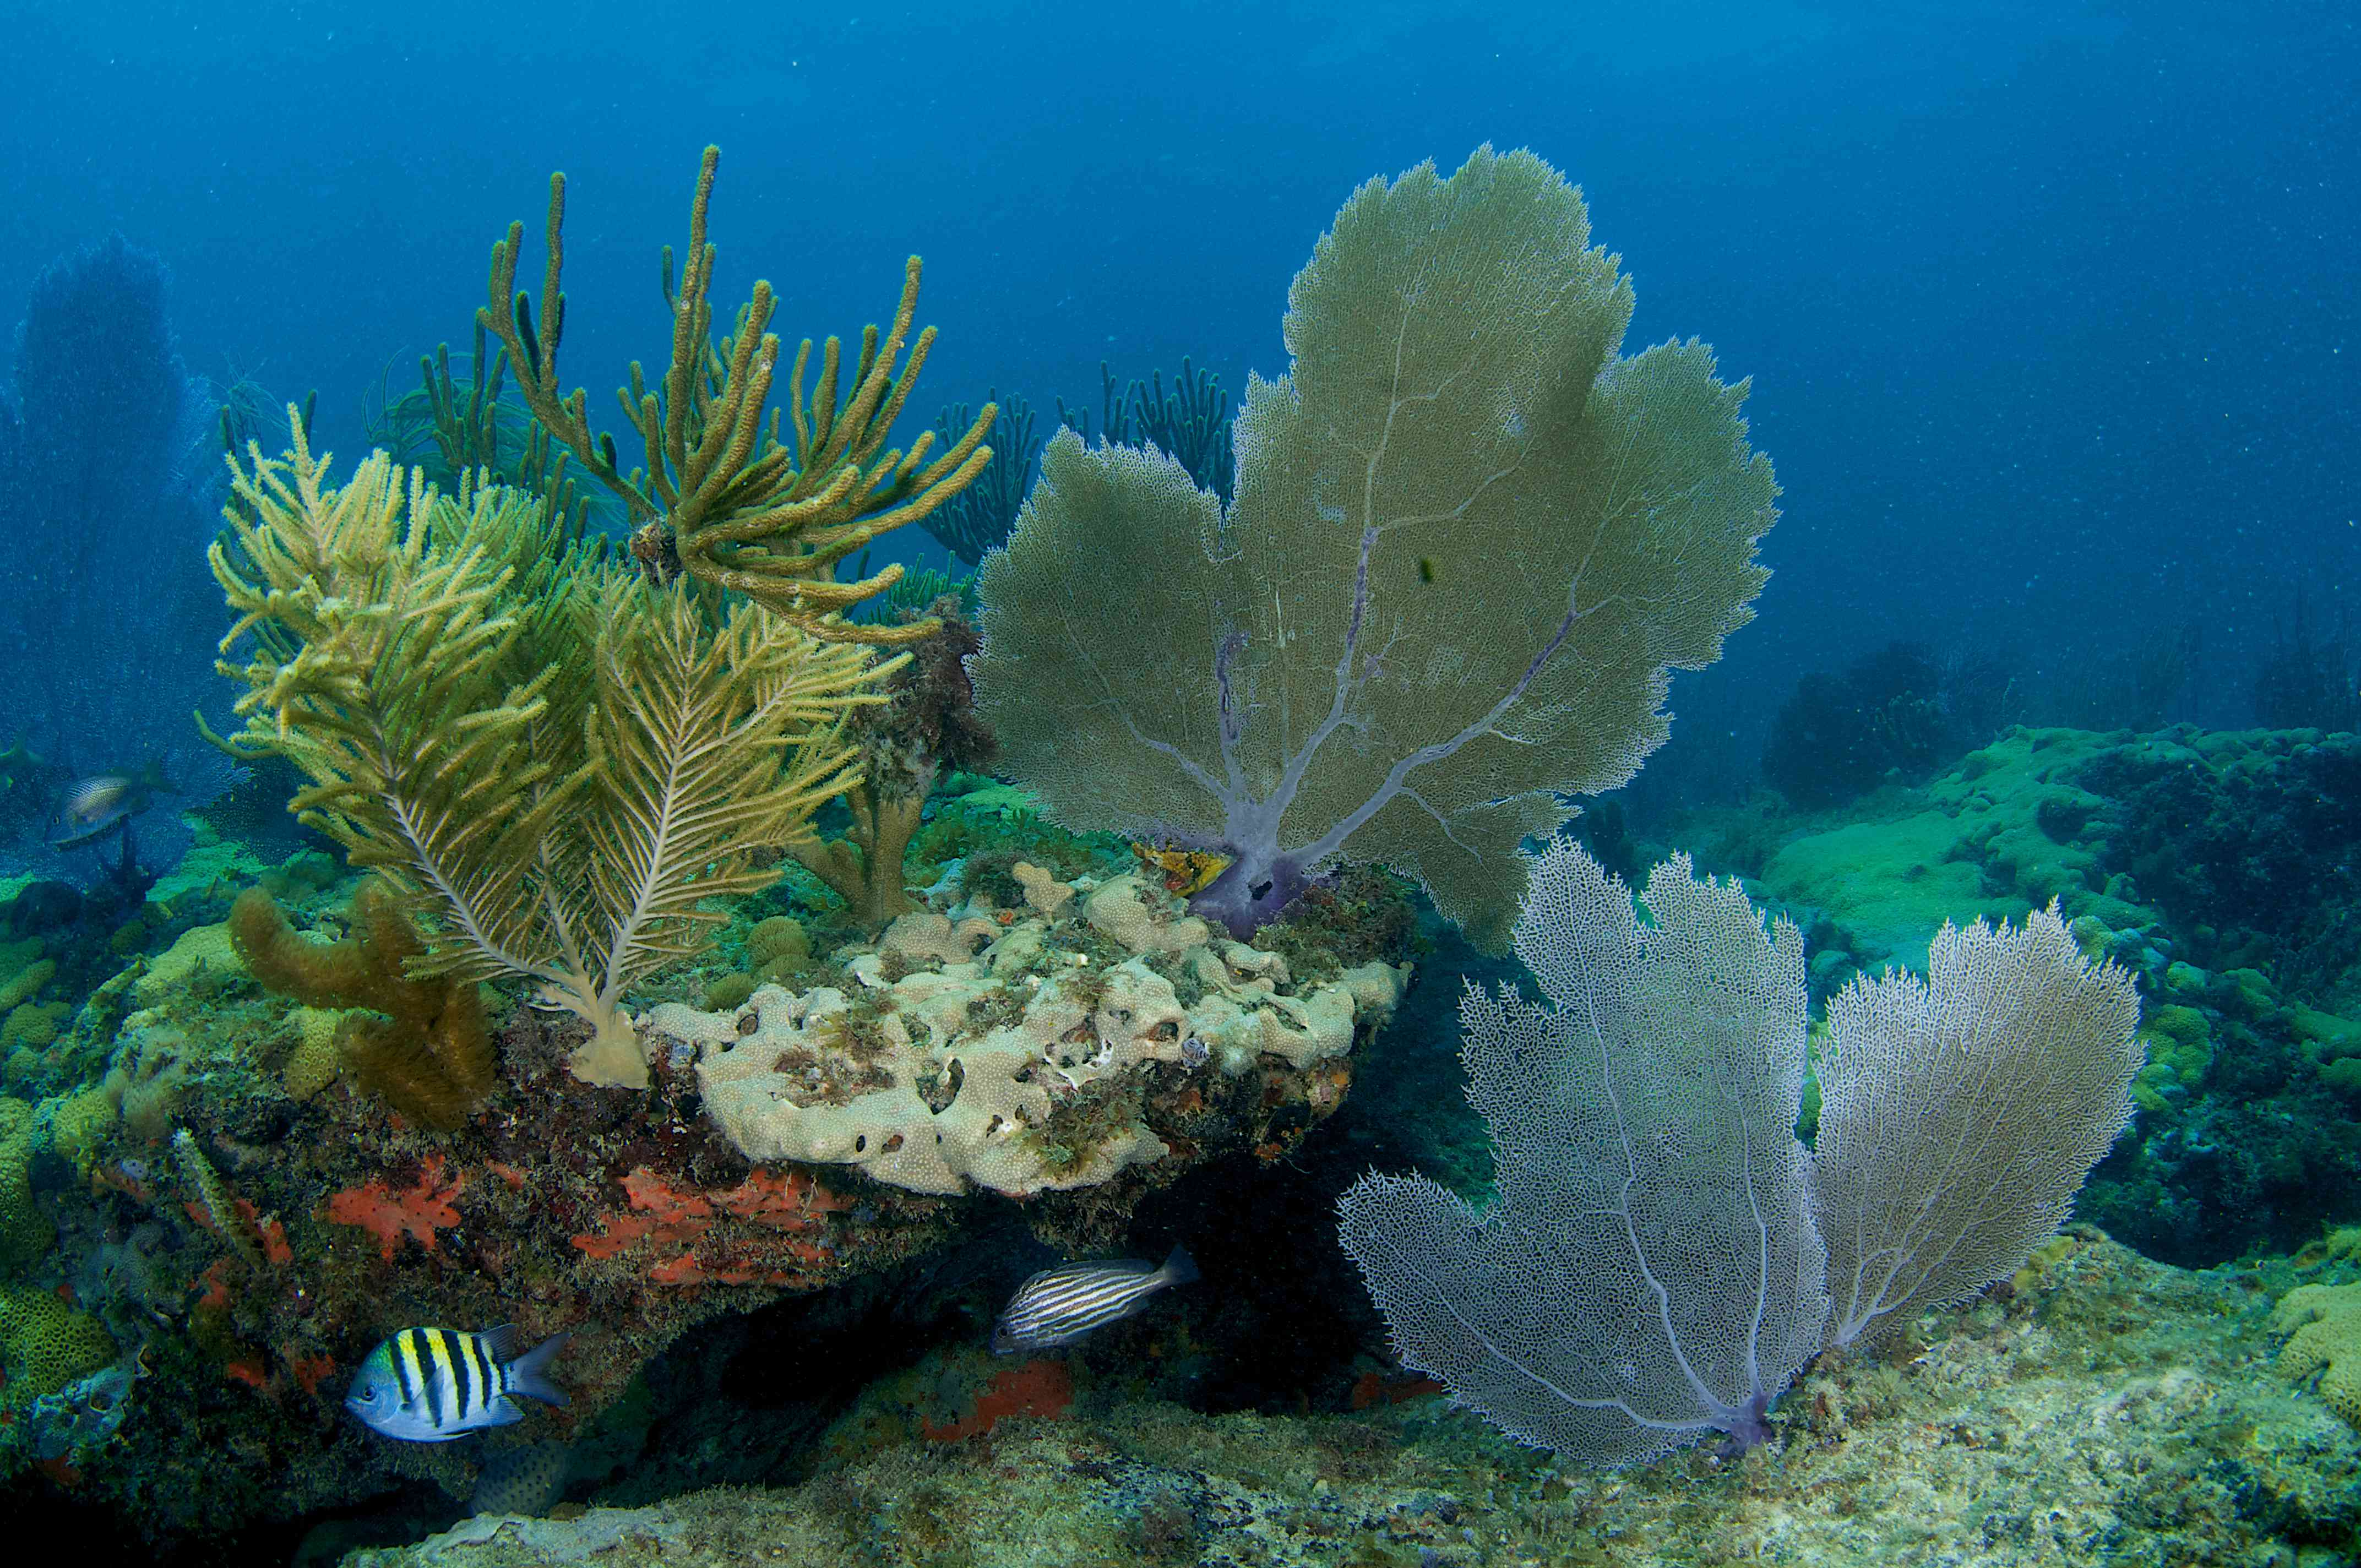 Sponges, Sea Fans and Sea Rods make up a coral composition. Picture taken in Broward County Florida.